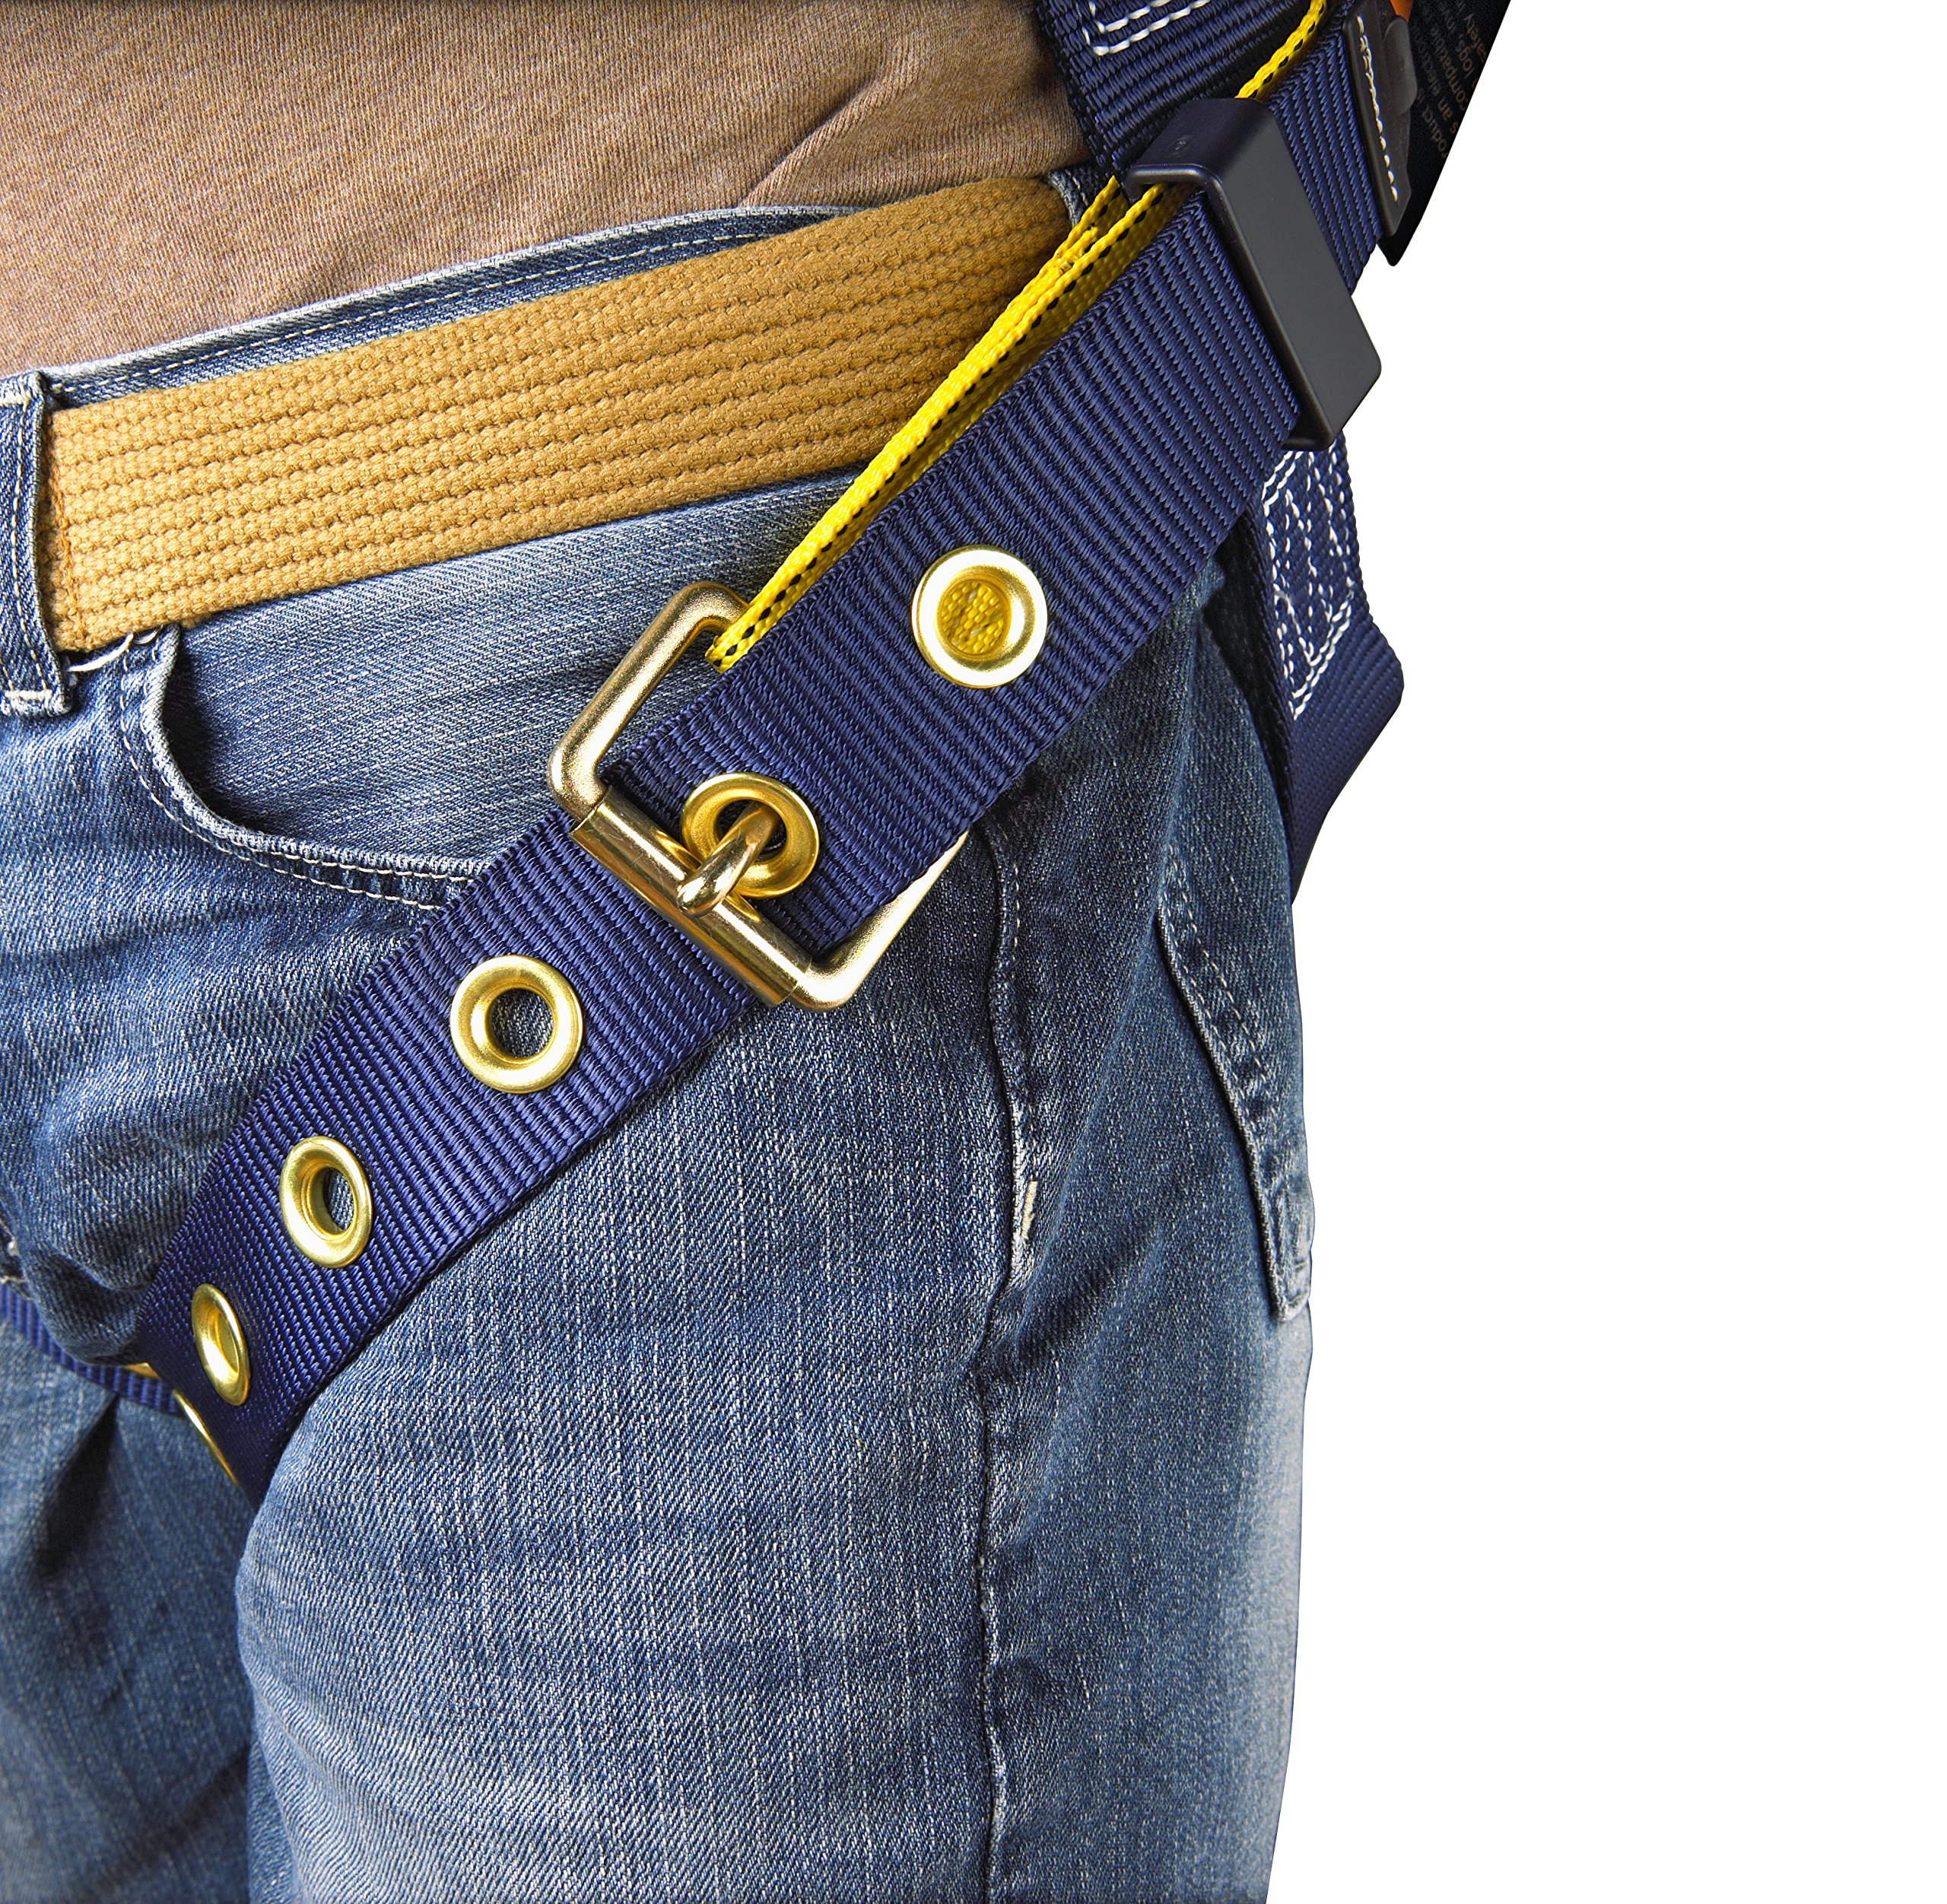 3M DBI-SALA Delta 1101654 Construction Harness, Back/Side D-Rings, Belt w/Sewn-In Back & Shoulder Pads, Tongue Buckle Leg Straps, Medium, Navy/Yellow by 3M Fall Protection Business (Image #5)